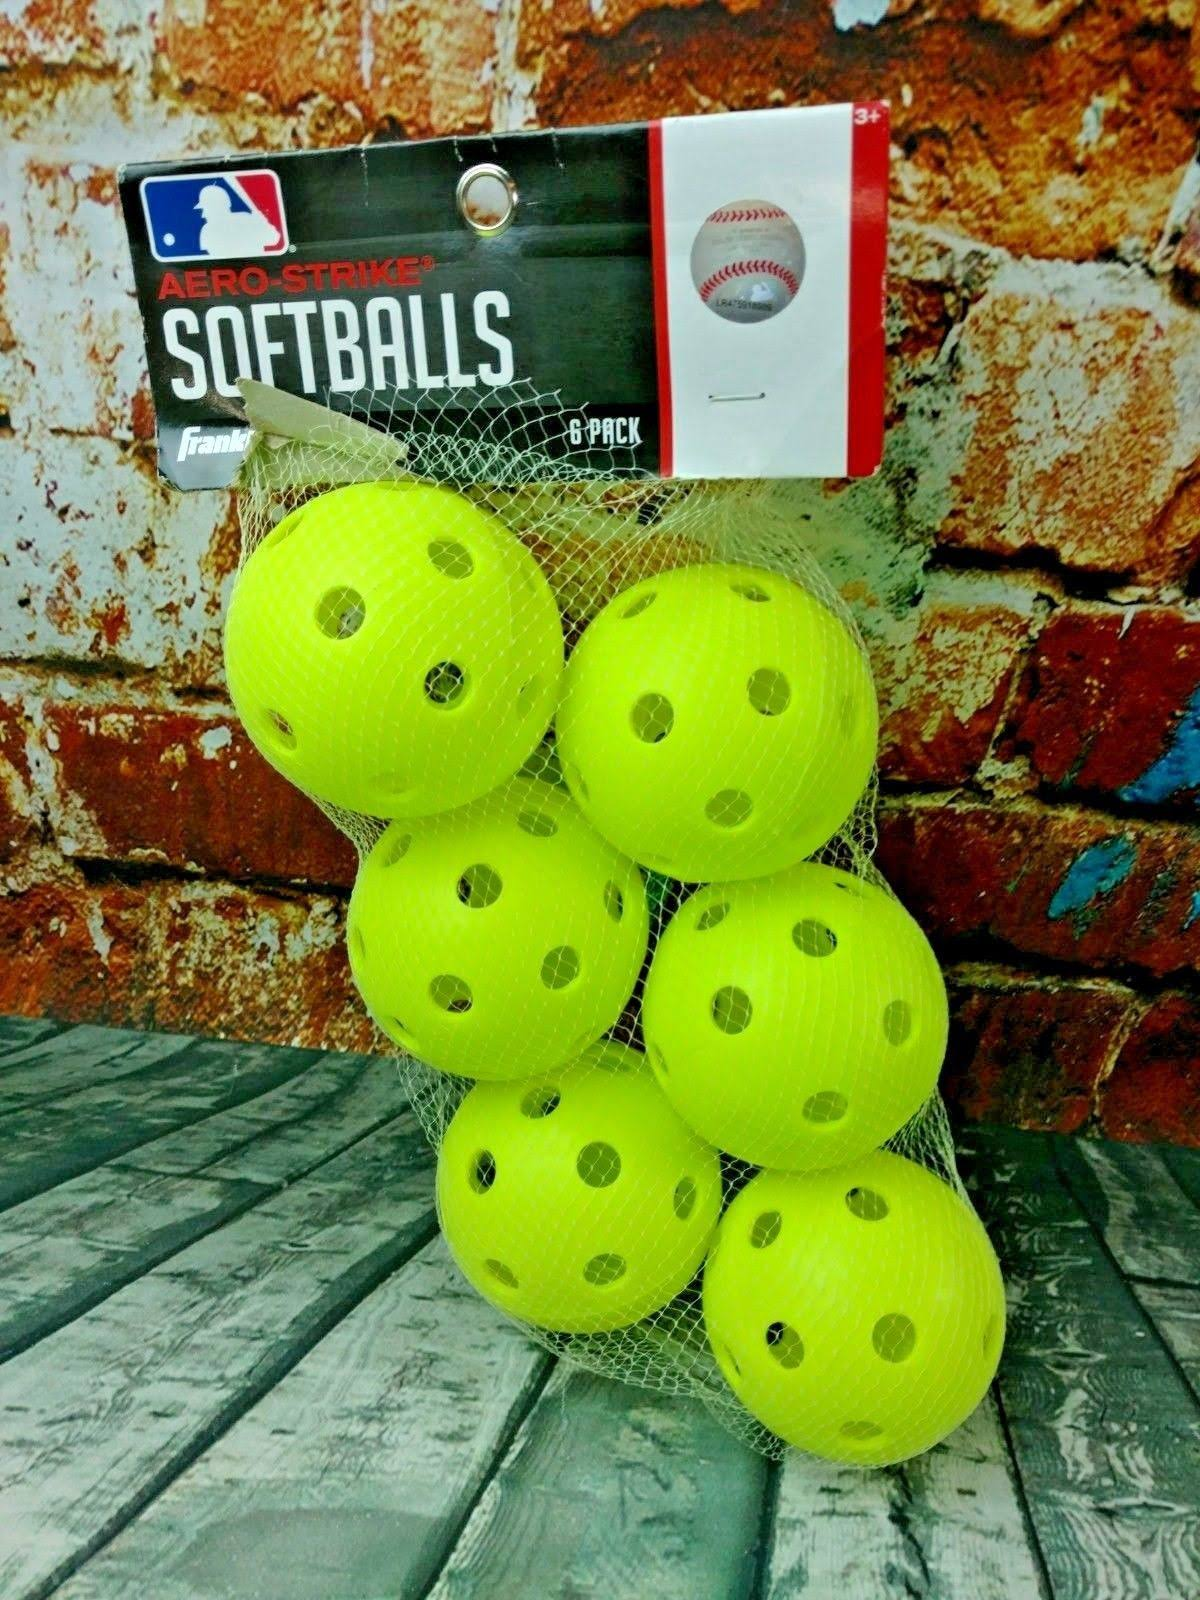 Aero-Strike Softballs 6-Pack MLB Franklin New Sealed